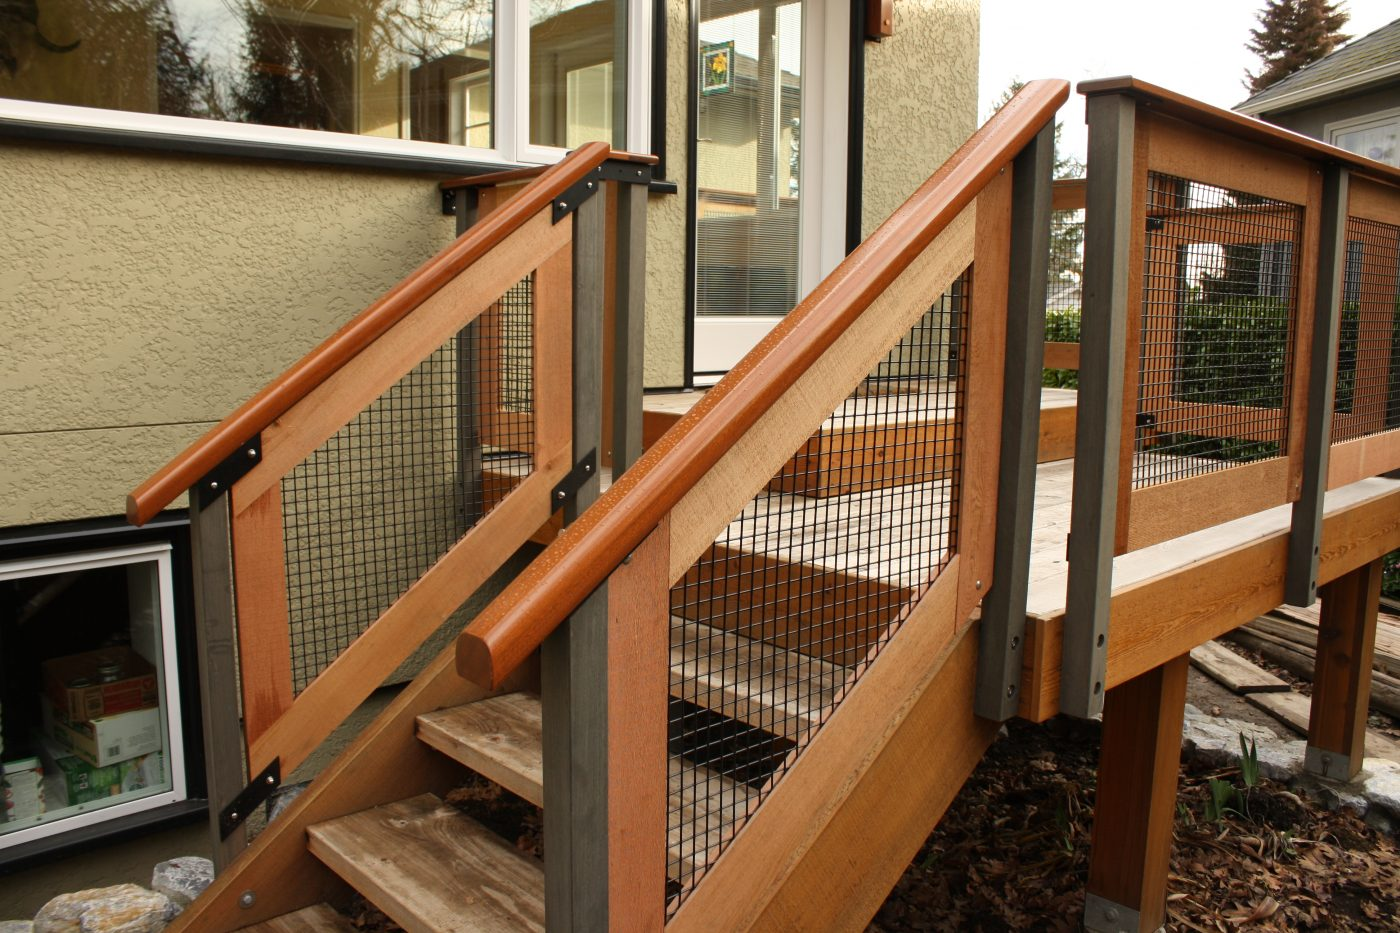 Custom cedar and mahogany deck railings, handrail detail